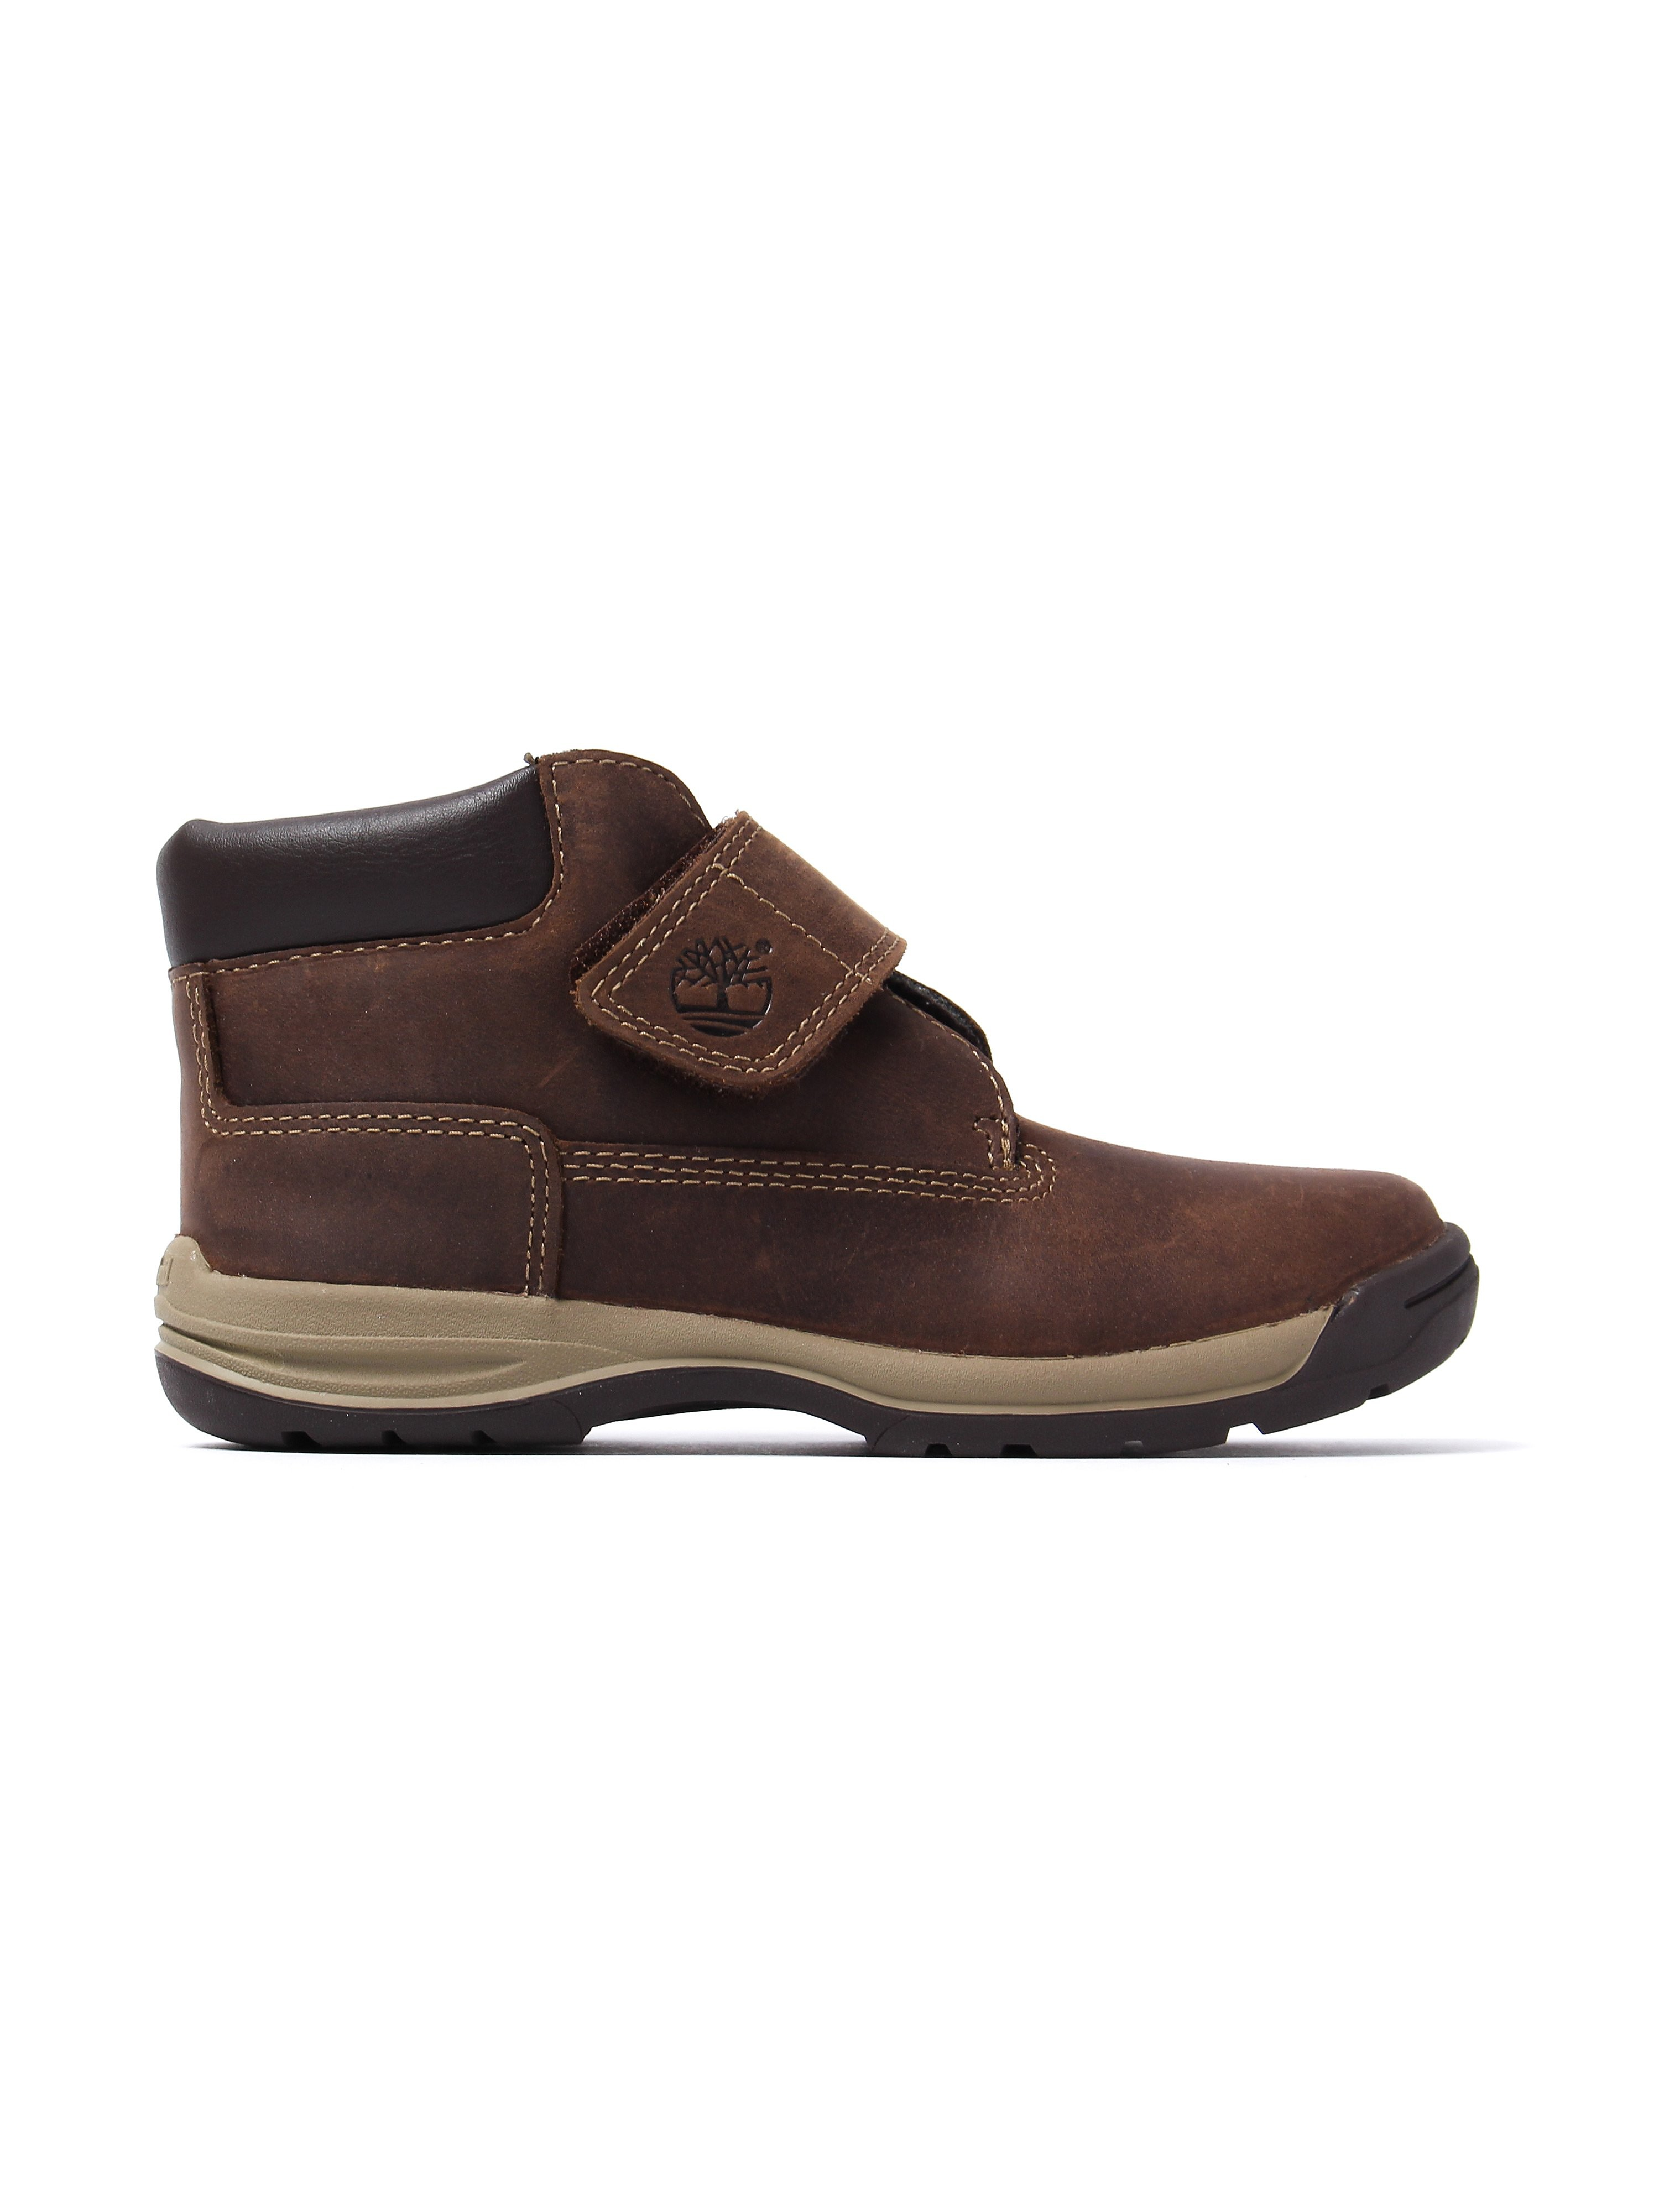 Timberland Infant Timber Tykes Boots - Brown Nubuck